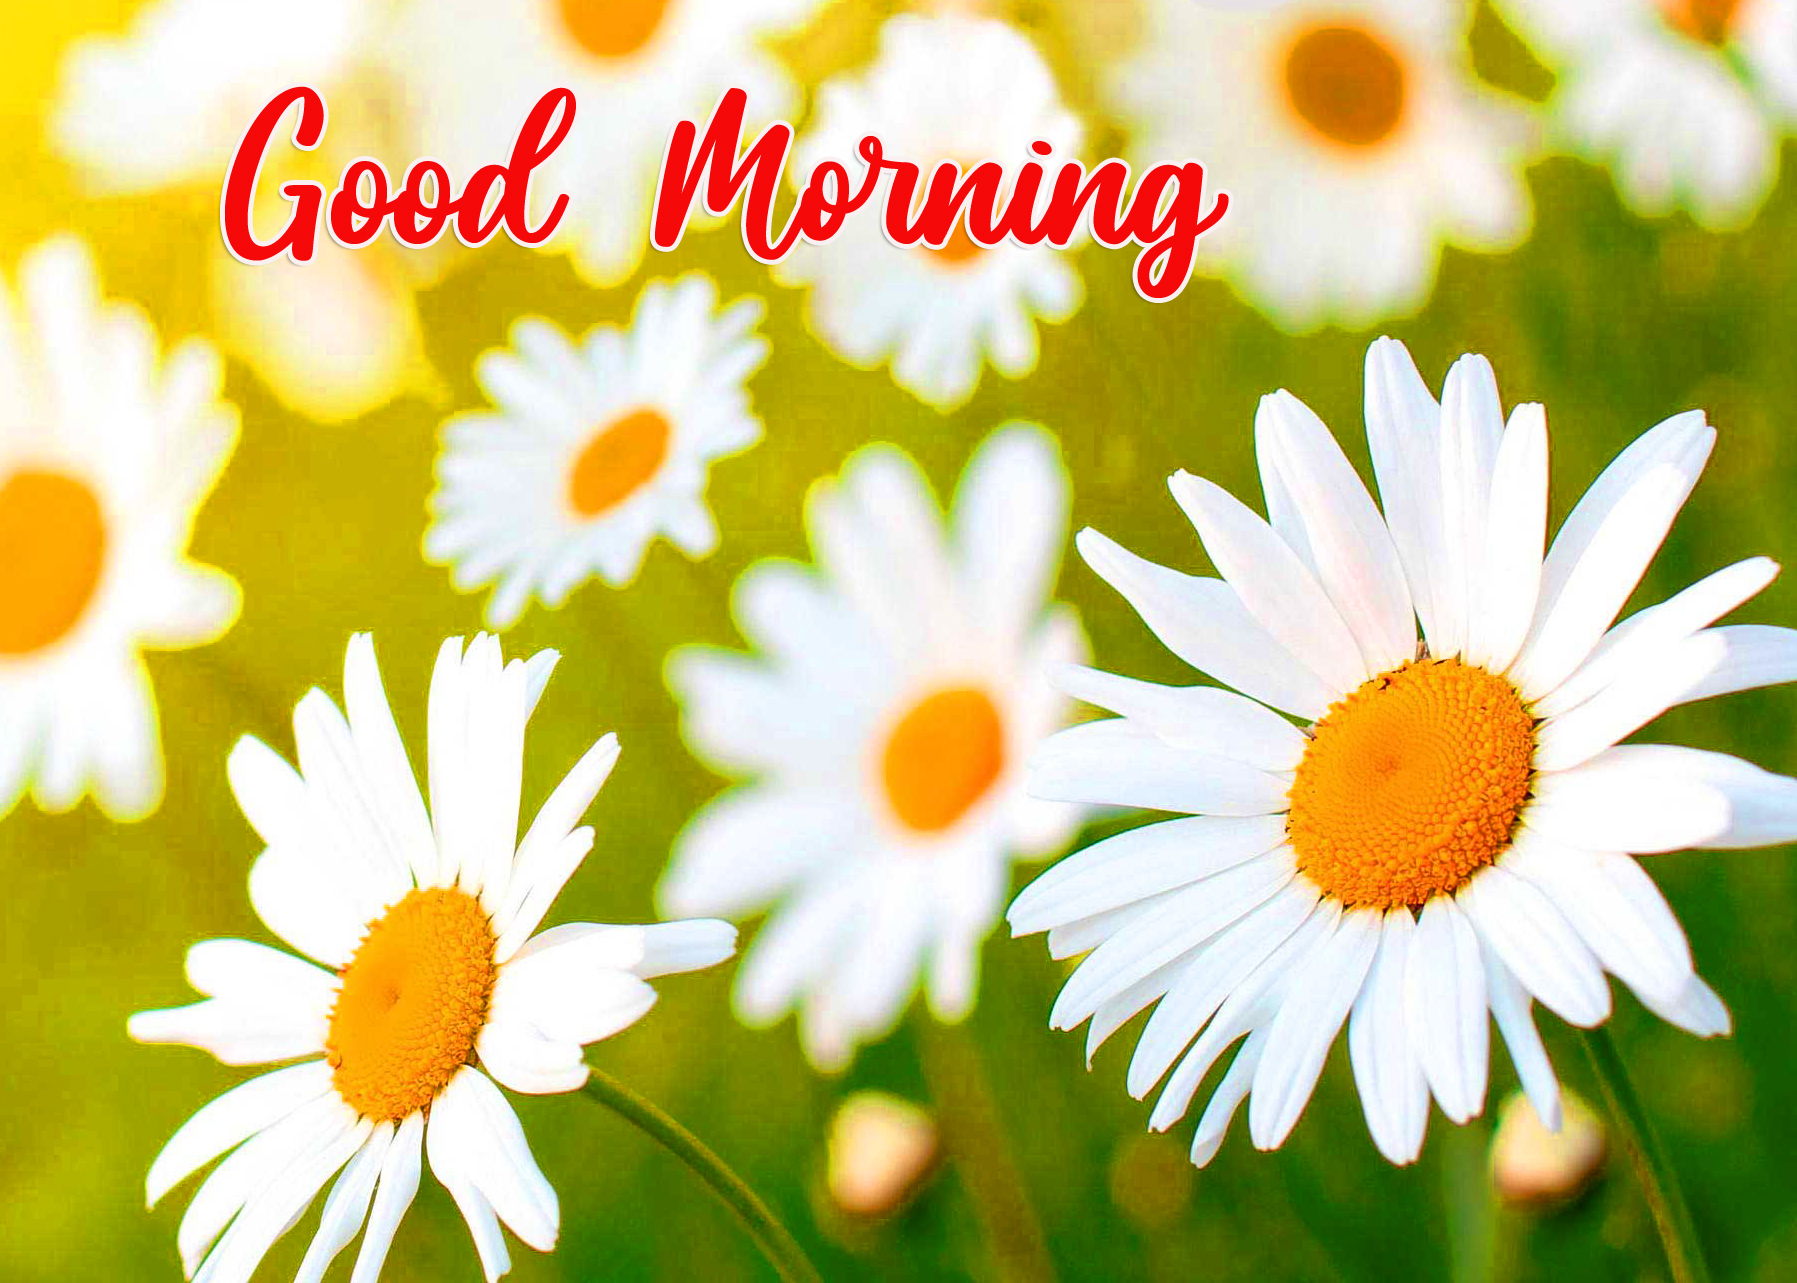 Good Morning Flowers Pic Pix Trends